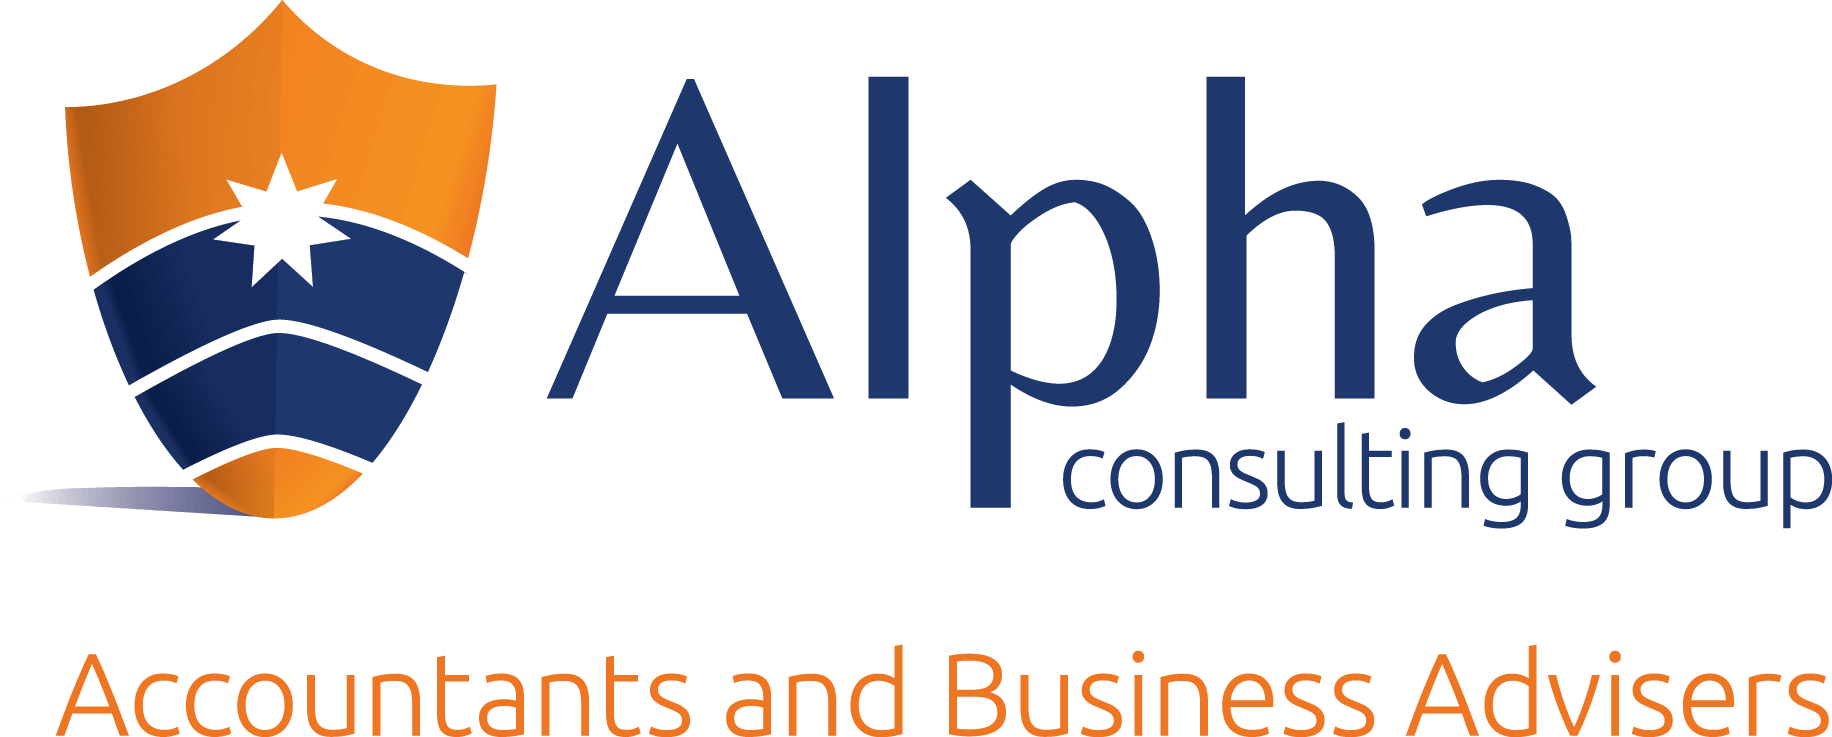 Alpha Consulting Group Accountants and Business Advisers logo.